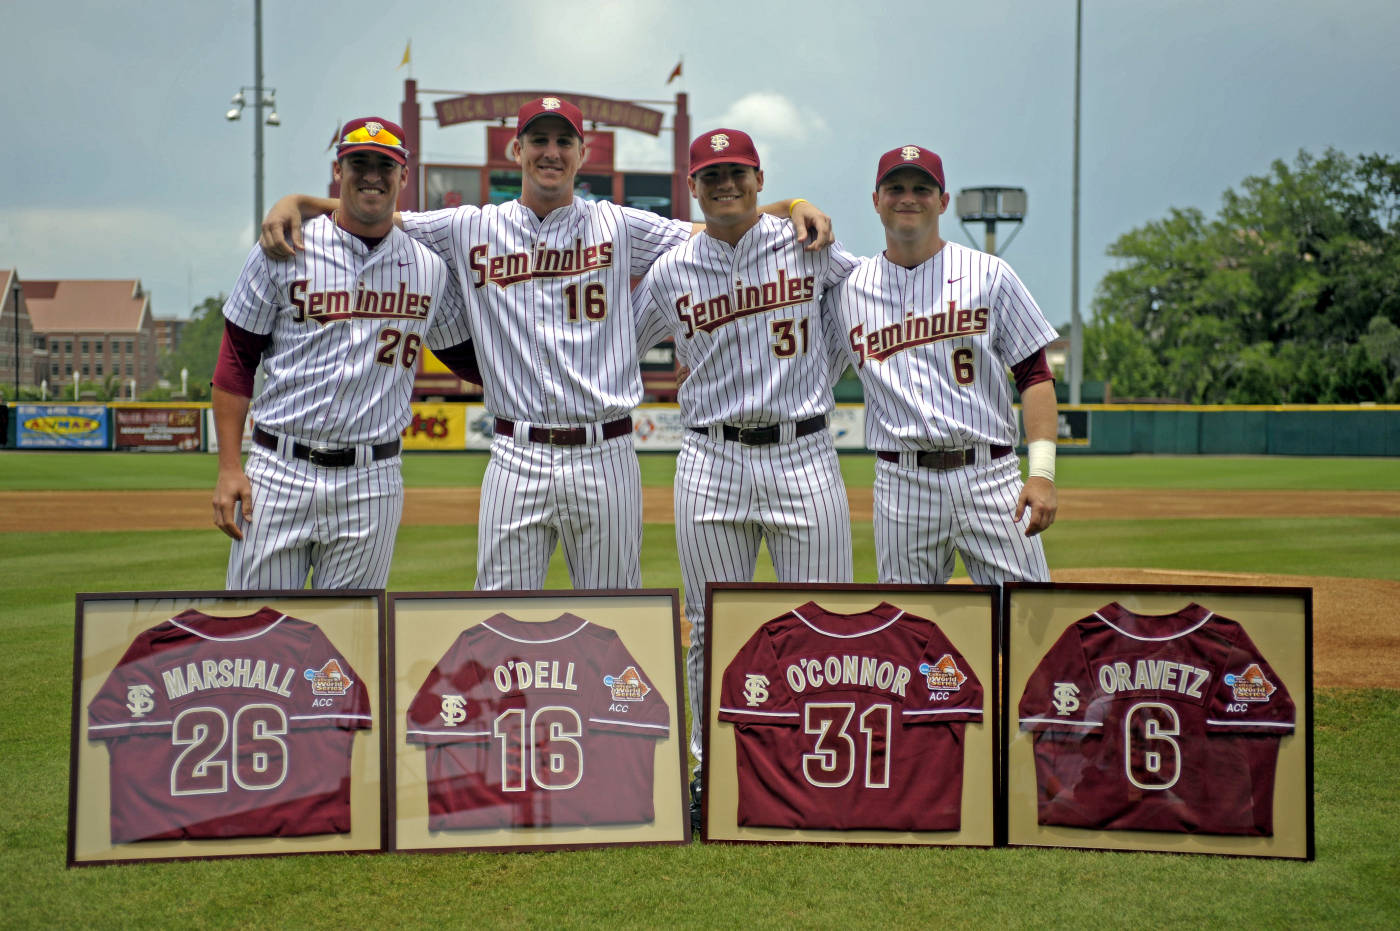 The 2009 Seminole Senior Class - (L to R): Jimmy Marshall, Bo O'Dell, Ruairi O'Connor and Tommy Oravetz